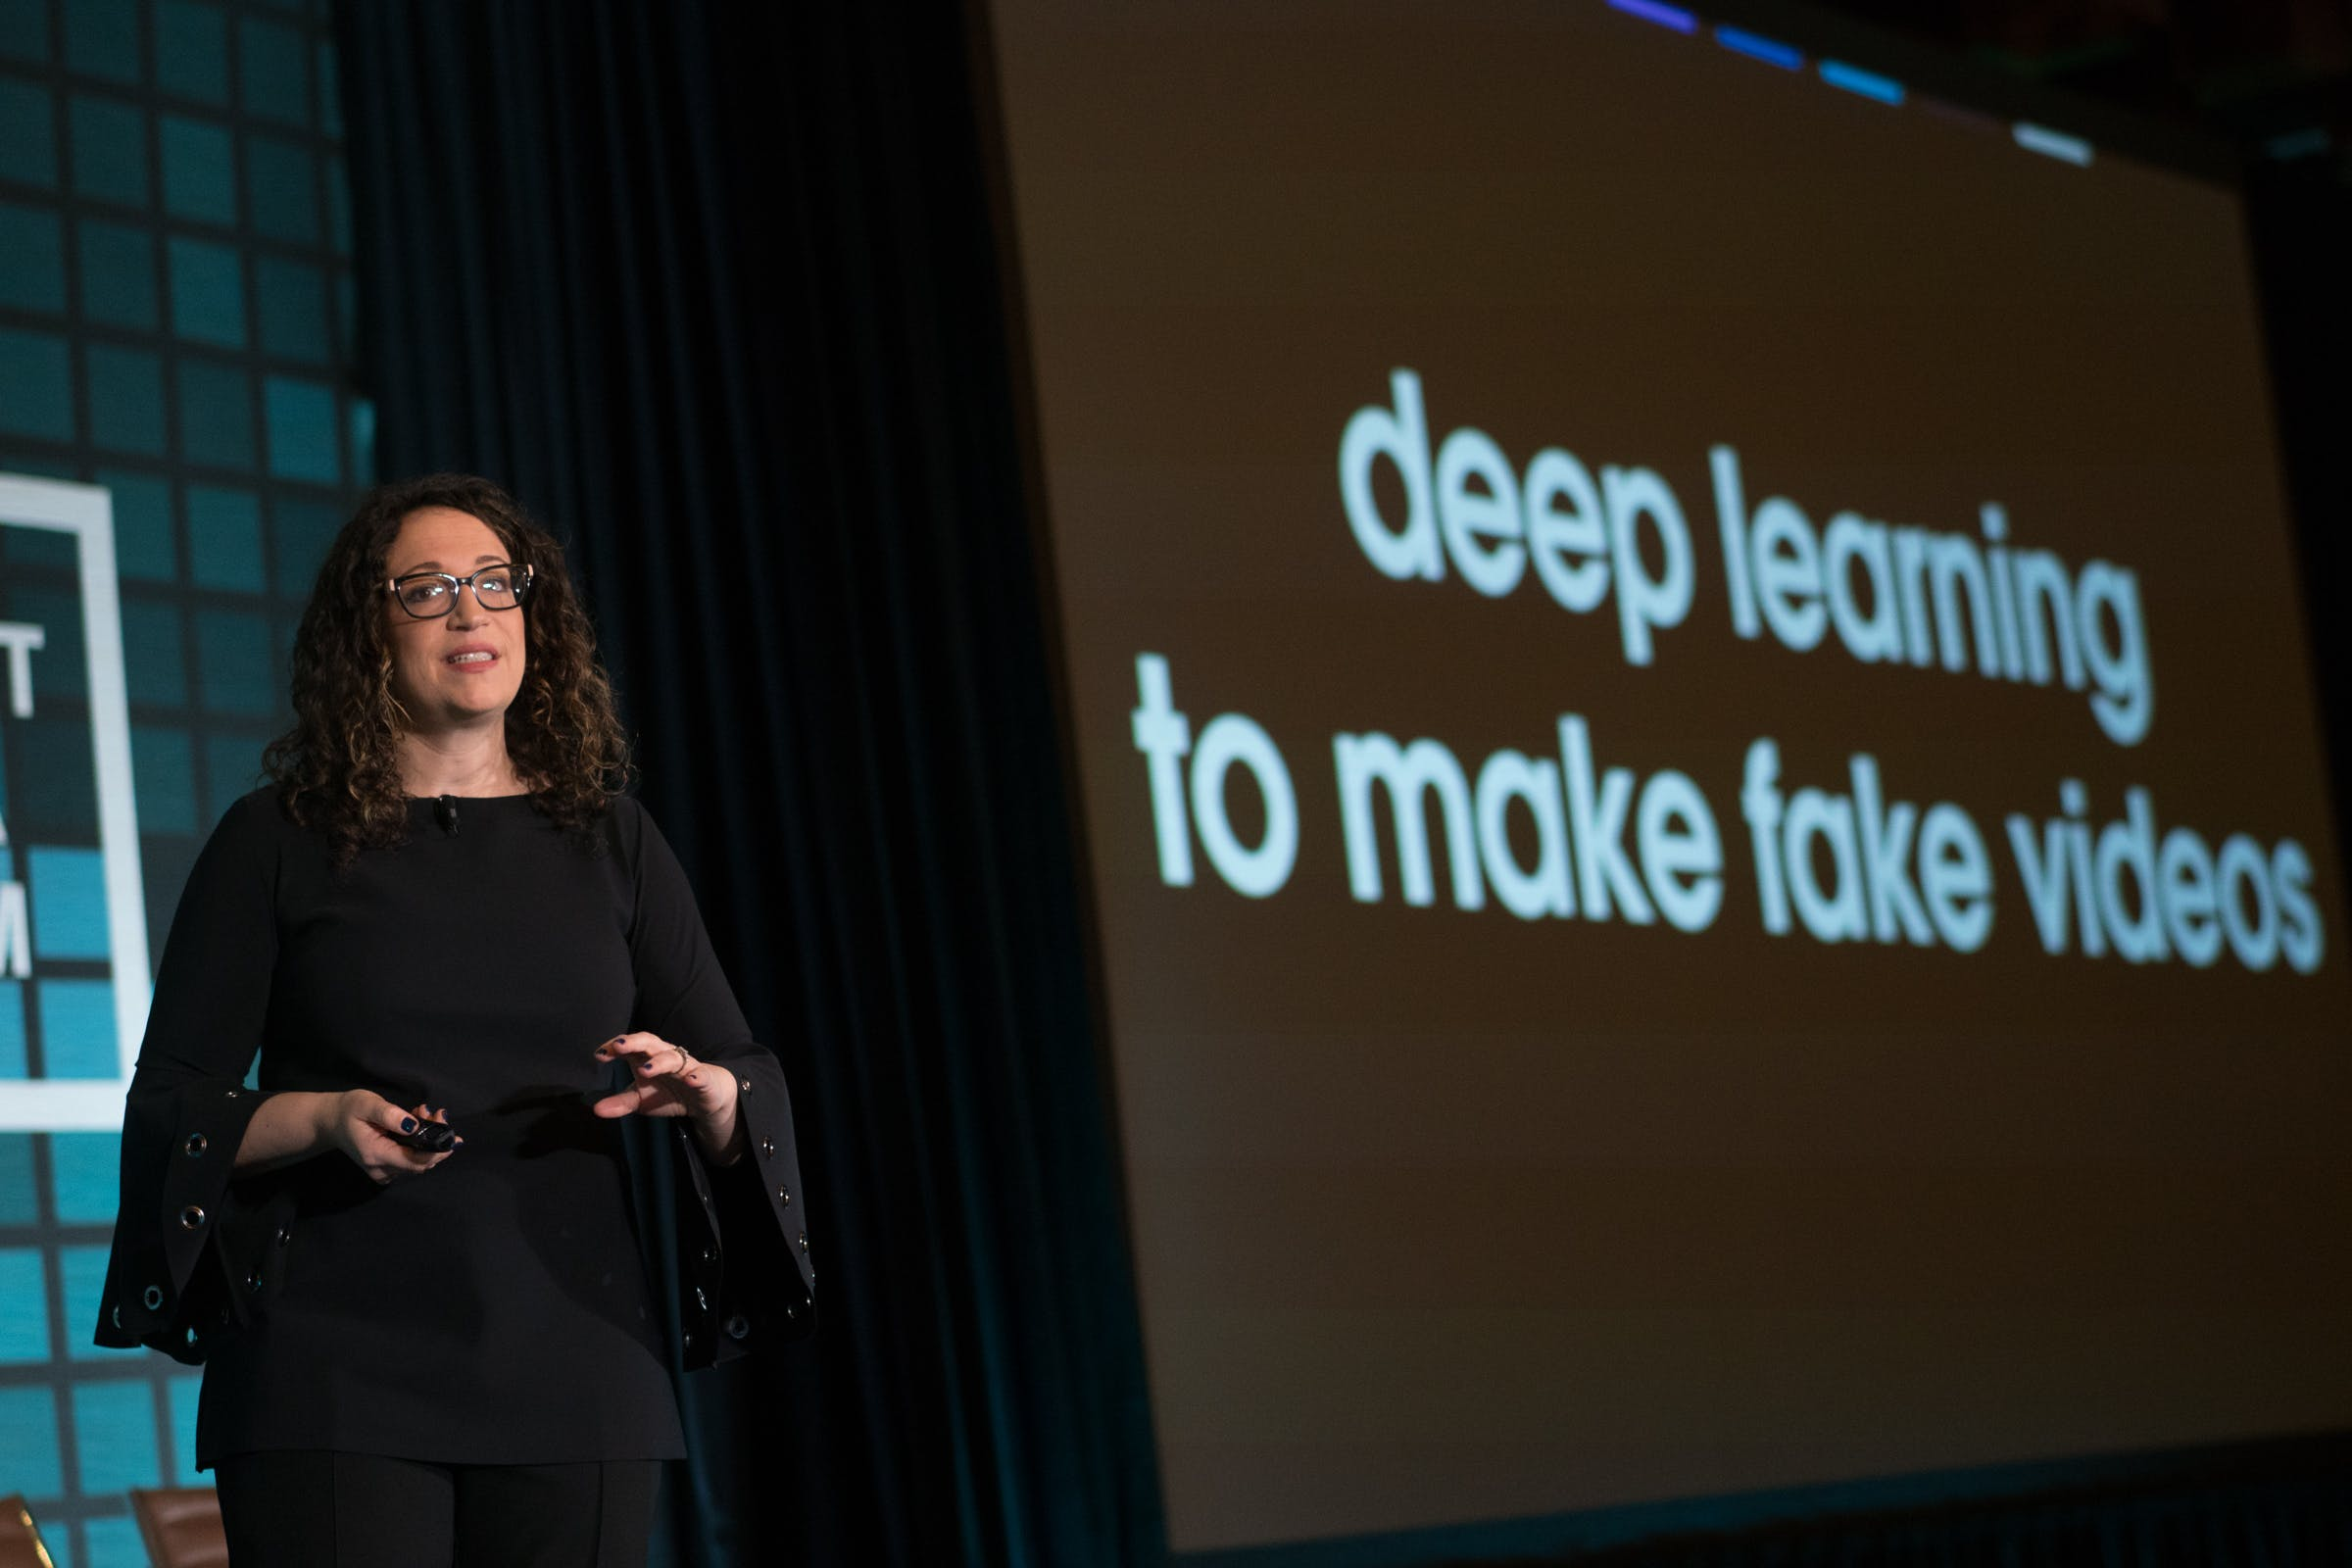 <p>Amy Webb, founder and CEO, Future Today Institute, delves deeply into the creation of fake news during her presentation; &quot;What&#39;s New, What&#39;s Next&quot; at the Knight Media Forum. Photo: Angel Valentin</p>